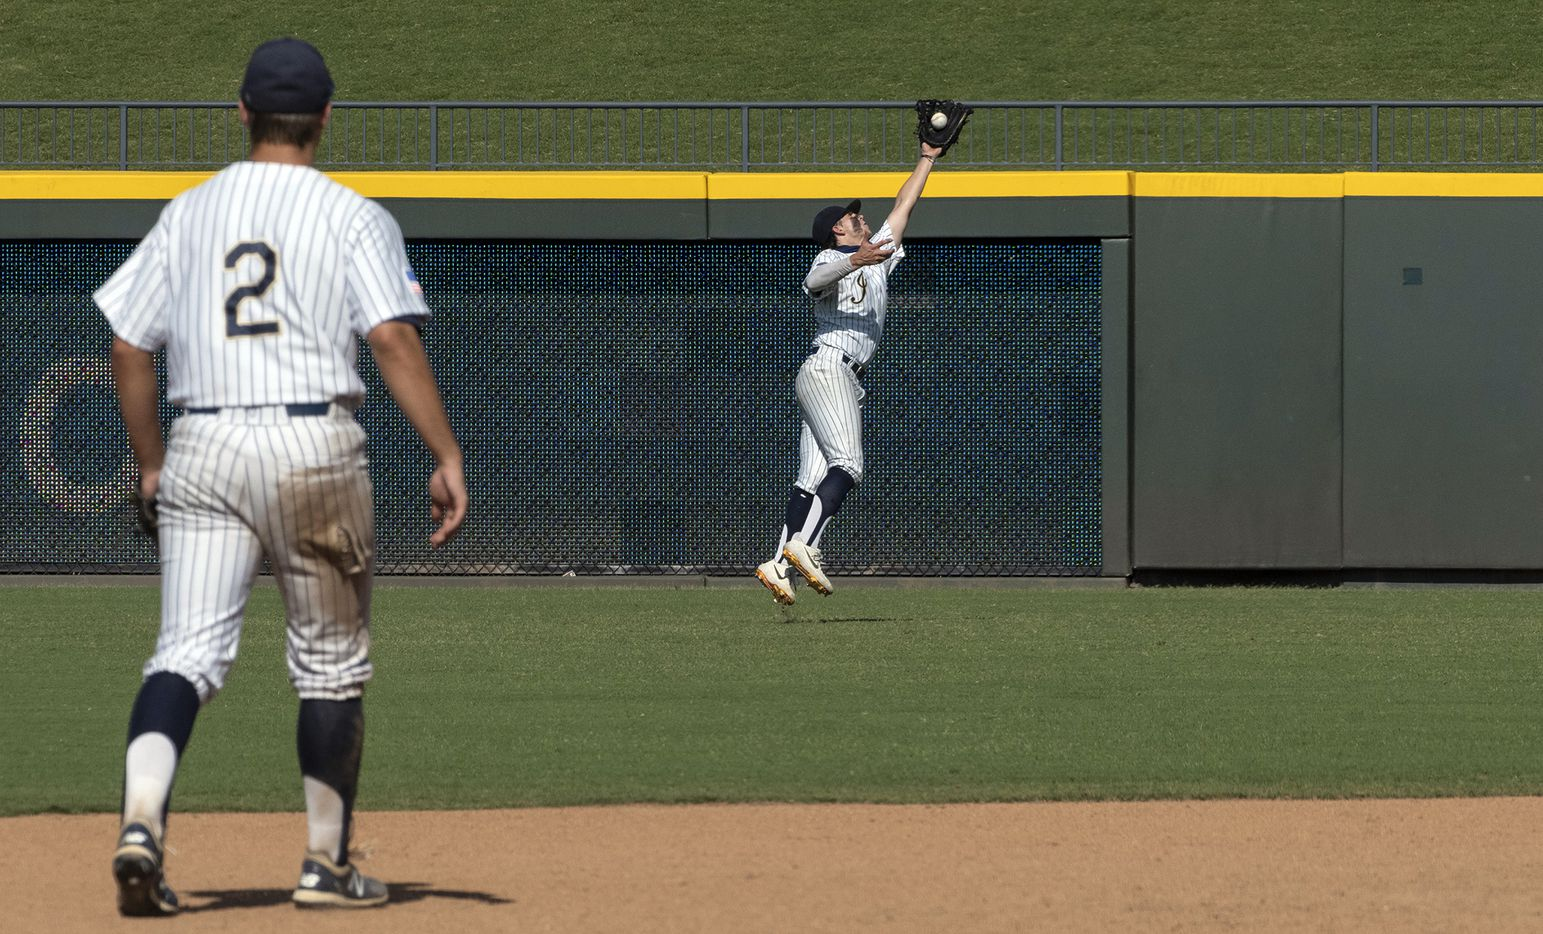 Keller Clayton Thomas, (7), runs down a fly ball hit by Houston Strake Jesuit Jacob Dorman, (7), during the fourth inning of the 2021 UIL 6A state baseball semifinals held, Friday, June 11, 2021, in Round Rock, Texas.  Keller defeated Strake Jesuit 7-1.  (Rodolfo Gonzalez/Special Contributor)